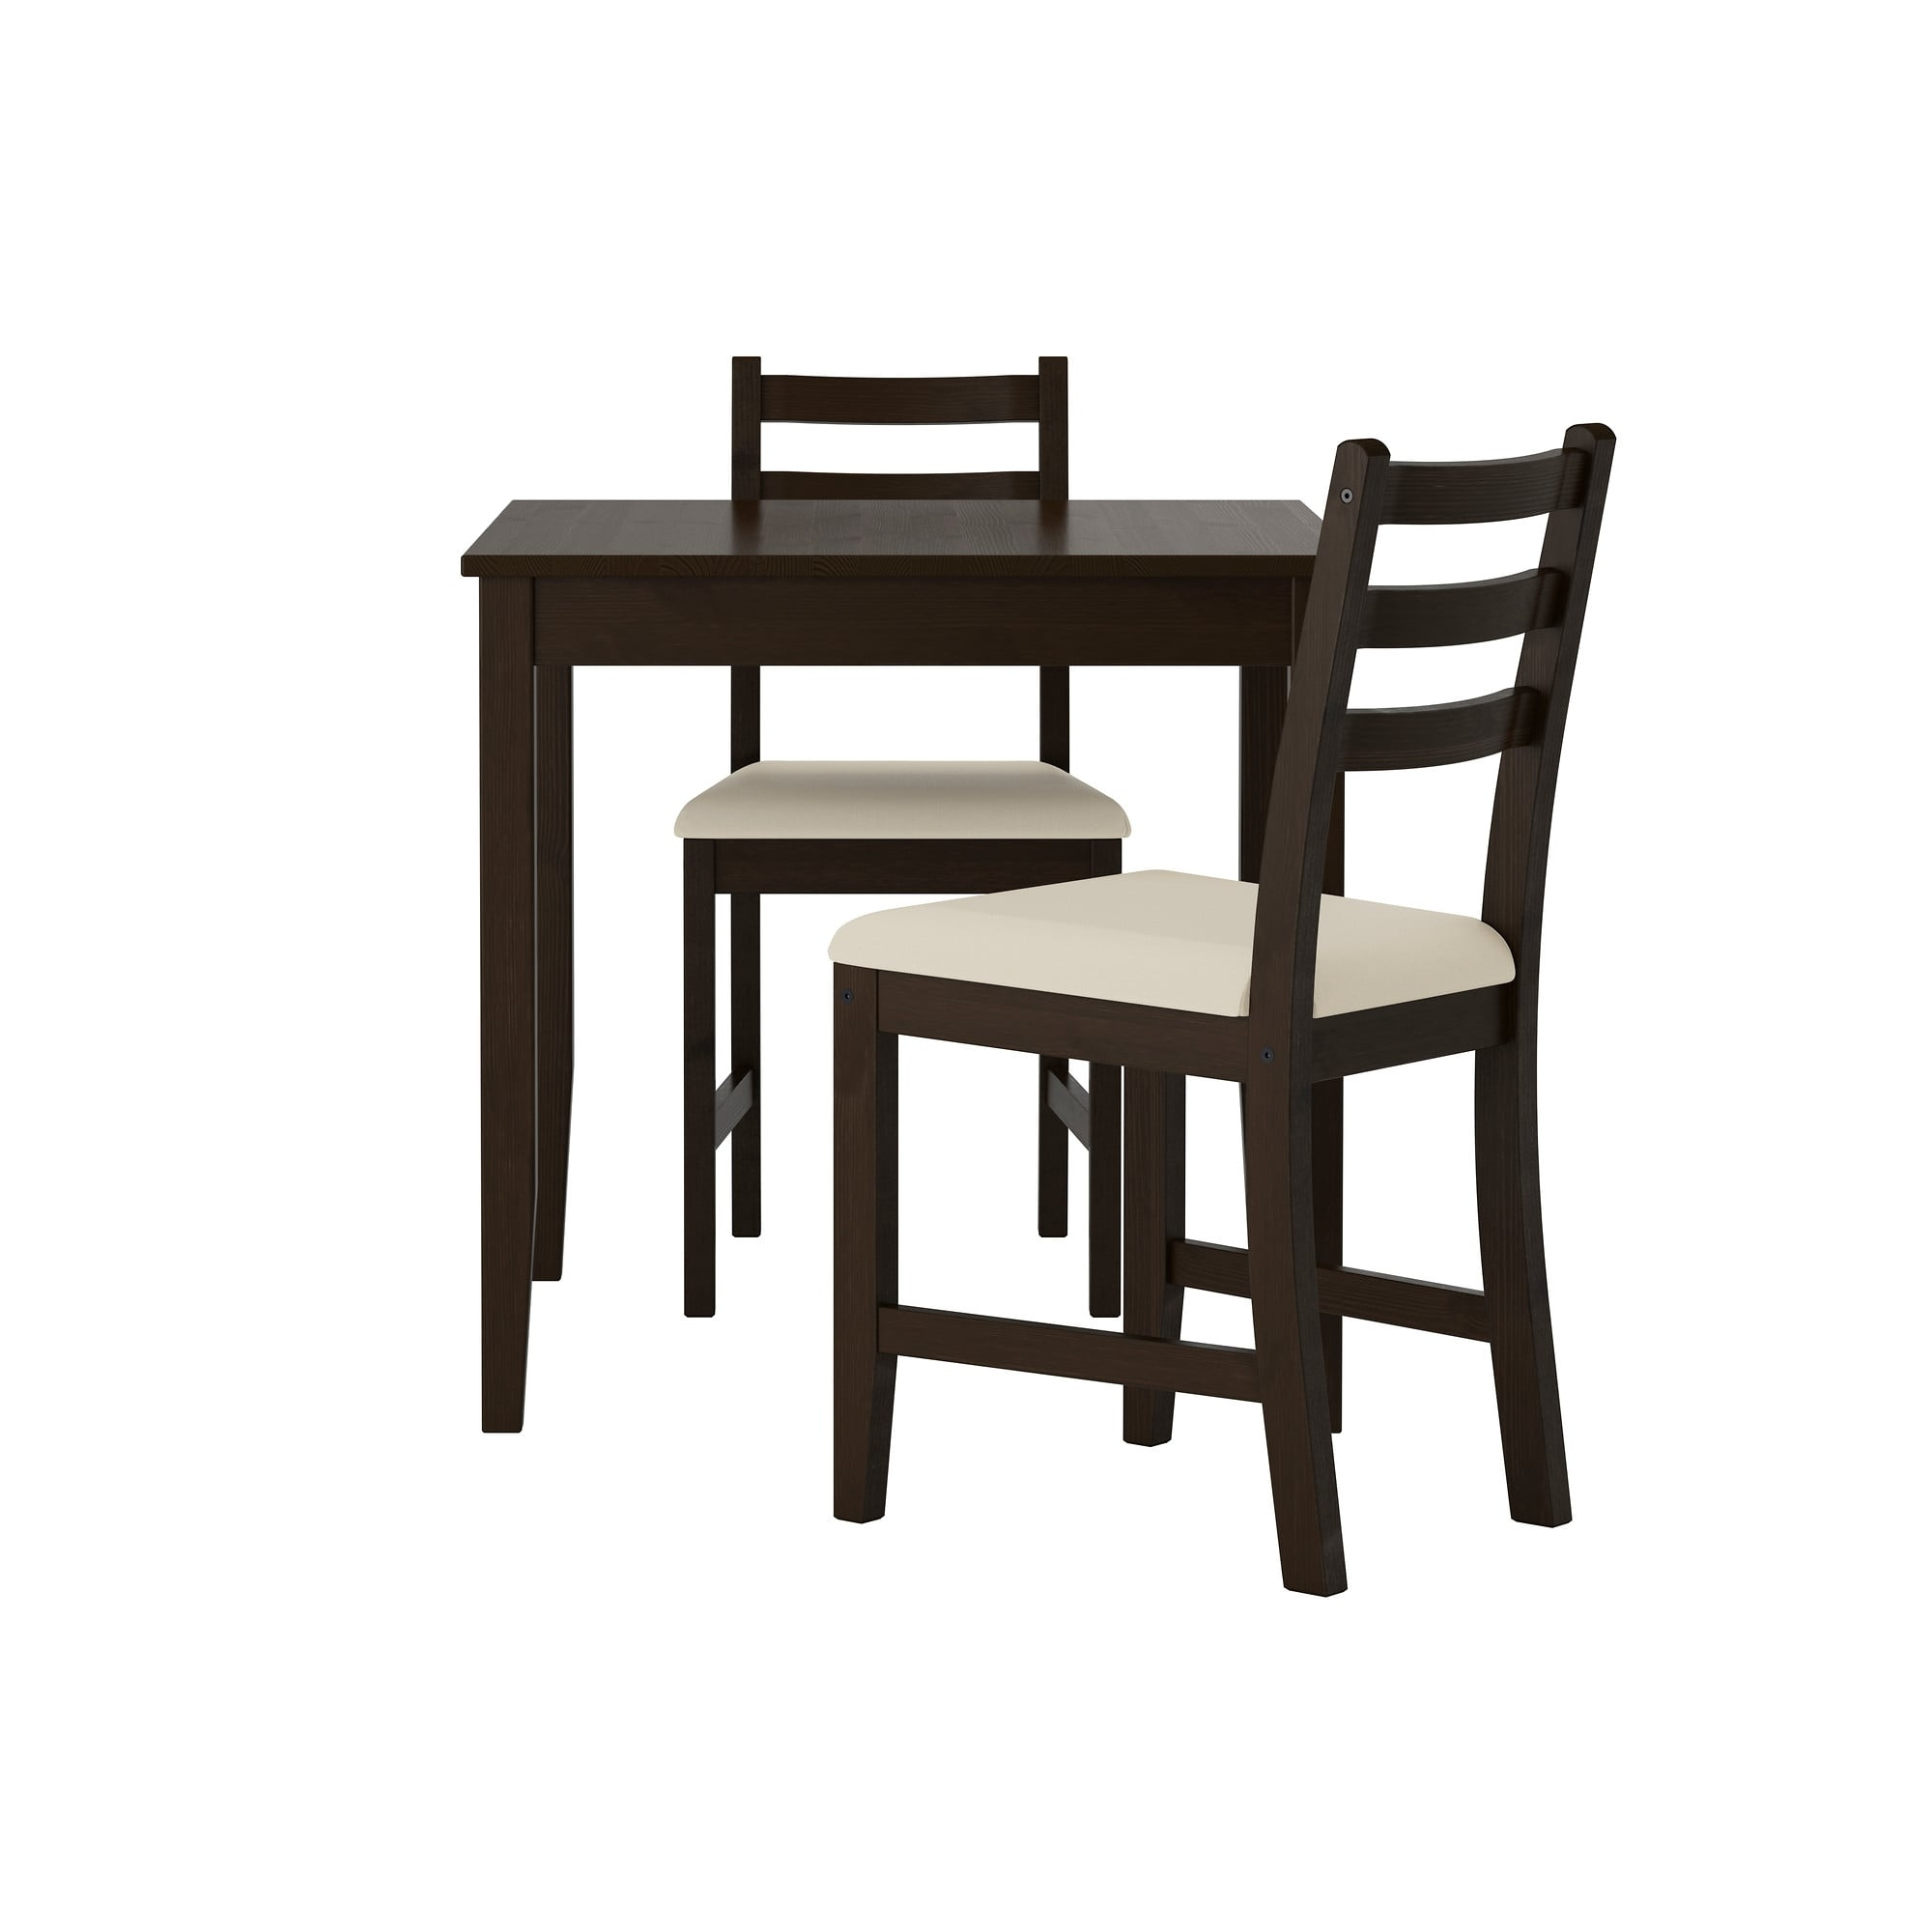 Dining Tables And 2 Chairs Throughout 2018 Lerhamn Table And 2 Chairs – Ikea (View 7 of 25)